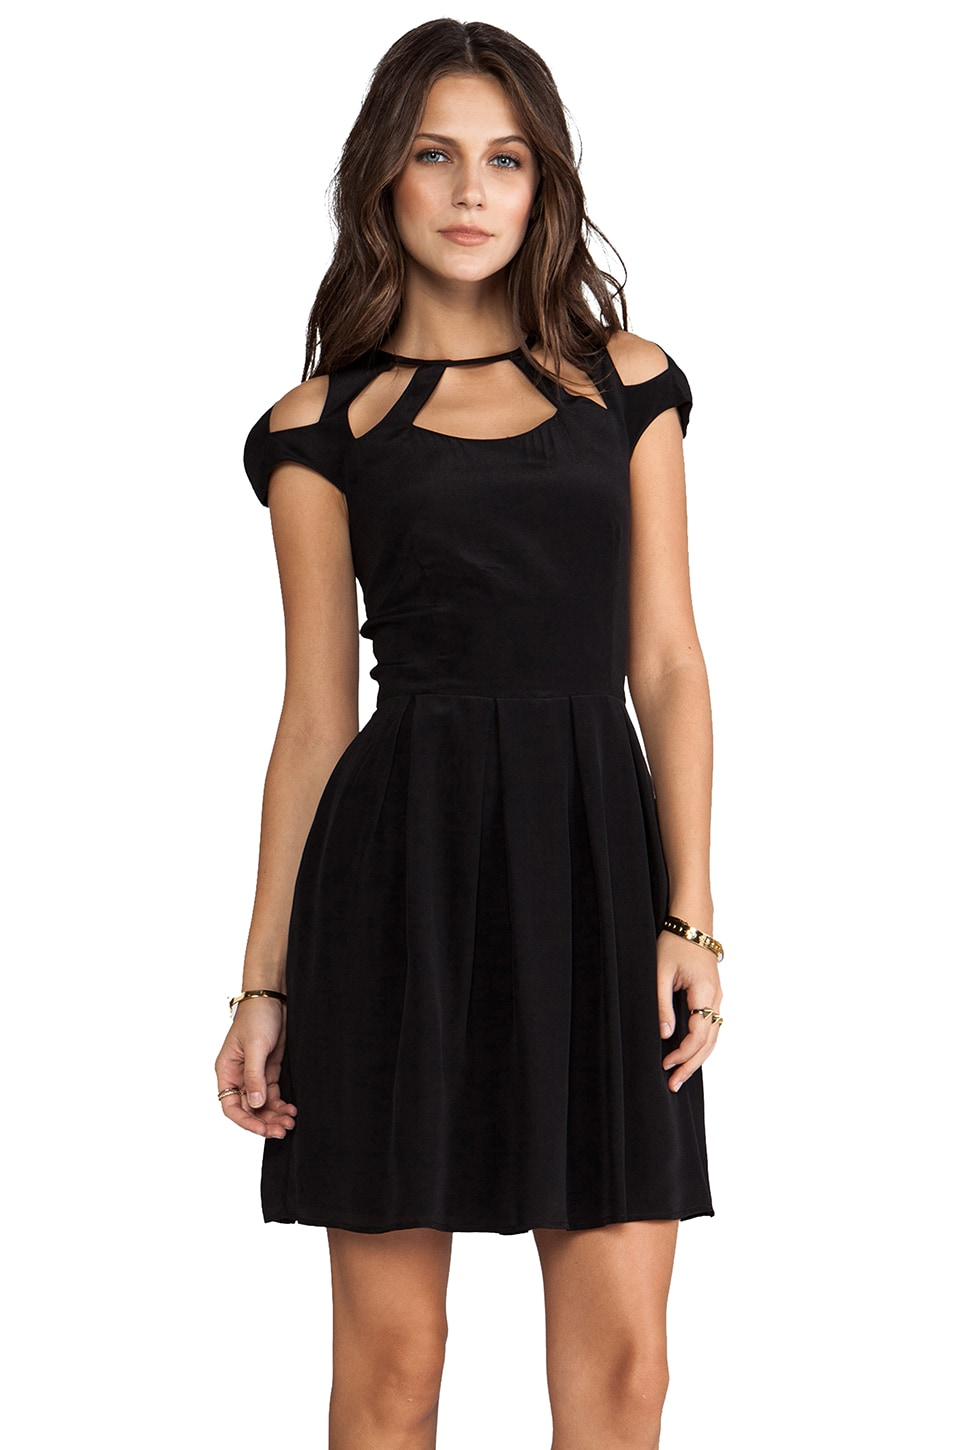 Talulah Sunsets Dress in Black